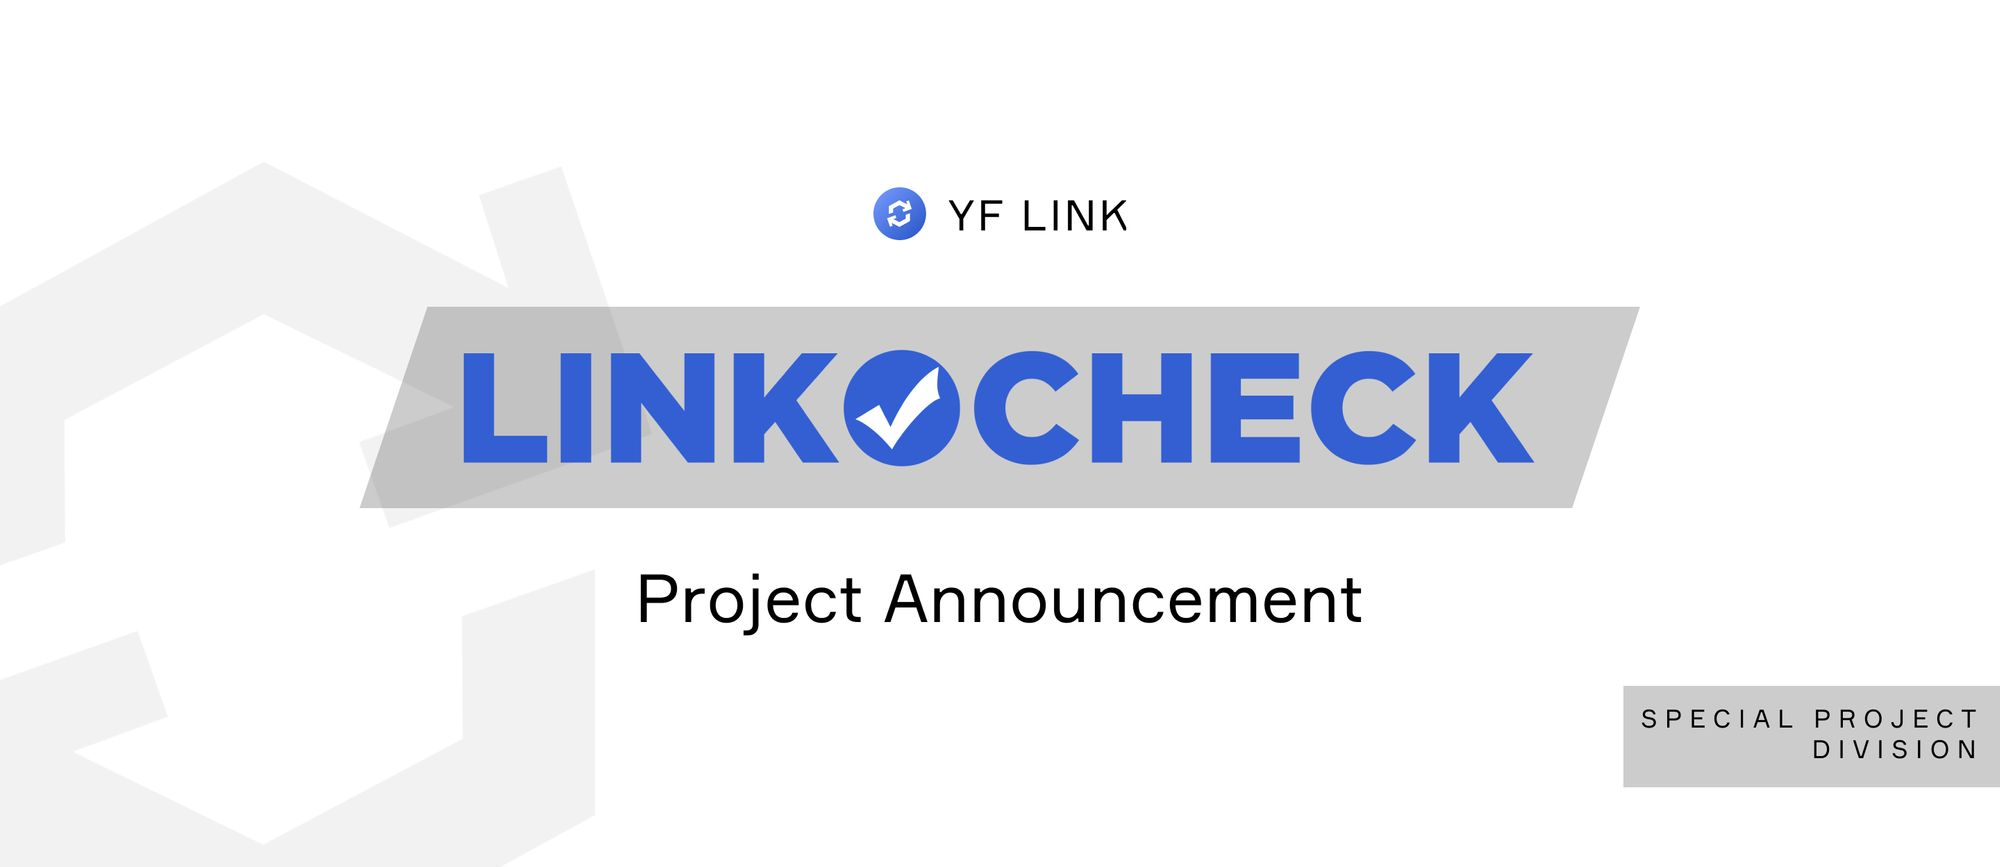 Project Announcement - LINKCHECK